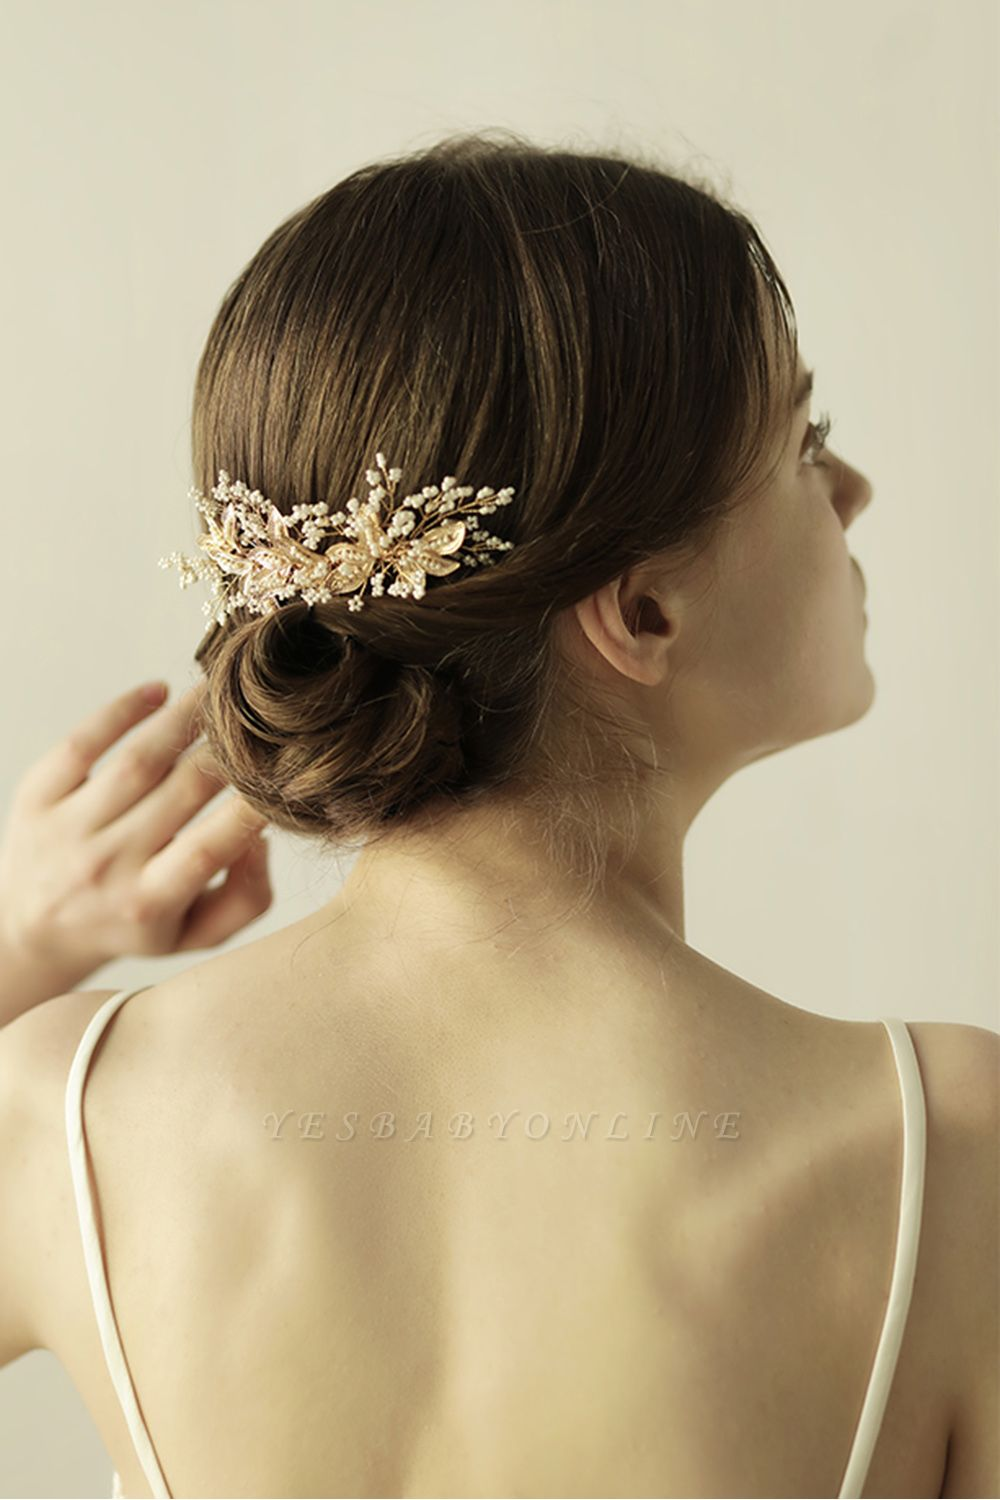 Beautiful Alloy Daily Wear Combs-Barrettes Headpiece with Imitation Pearls